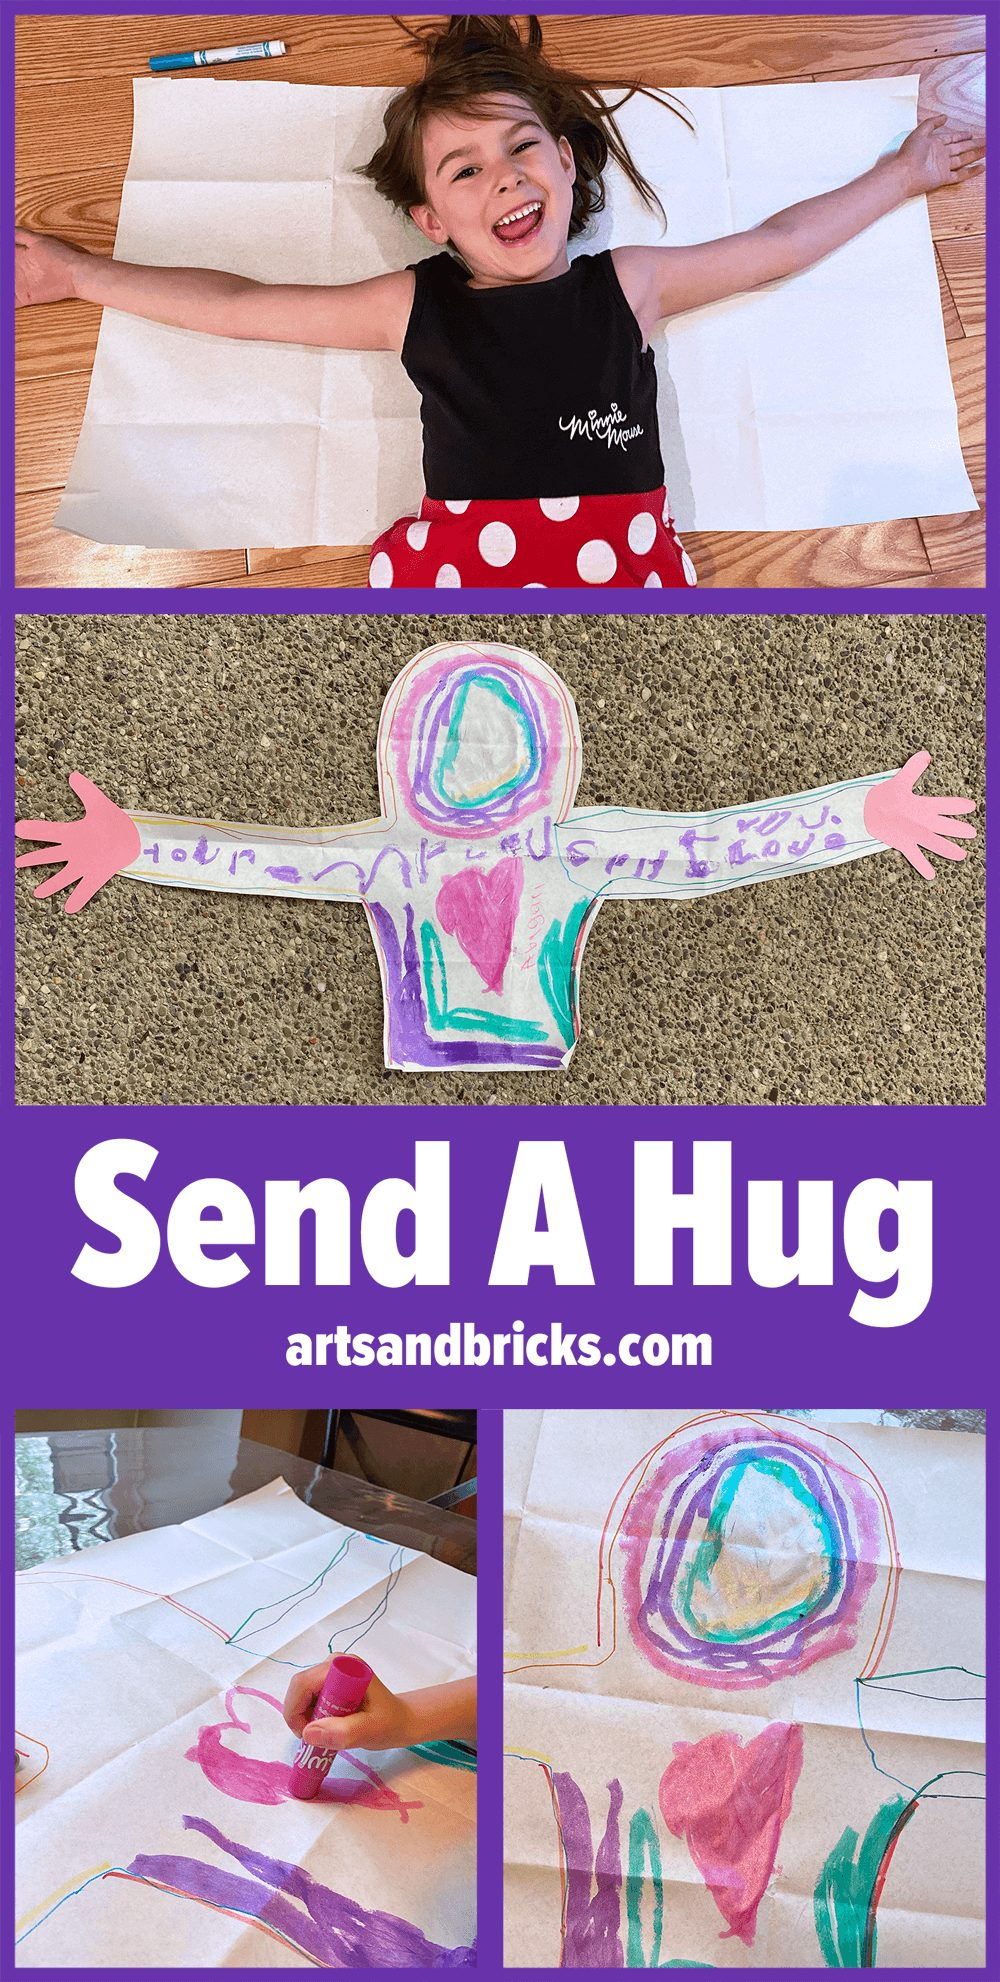 Brighten someone's day! Send a hug from your child. This simple family-friendly craft is perfect for quarantine, grandparents day, deployed parents and more! Get inspired and learn how to create your own from our blog.